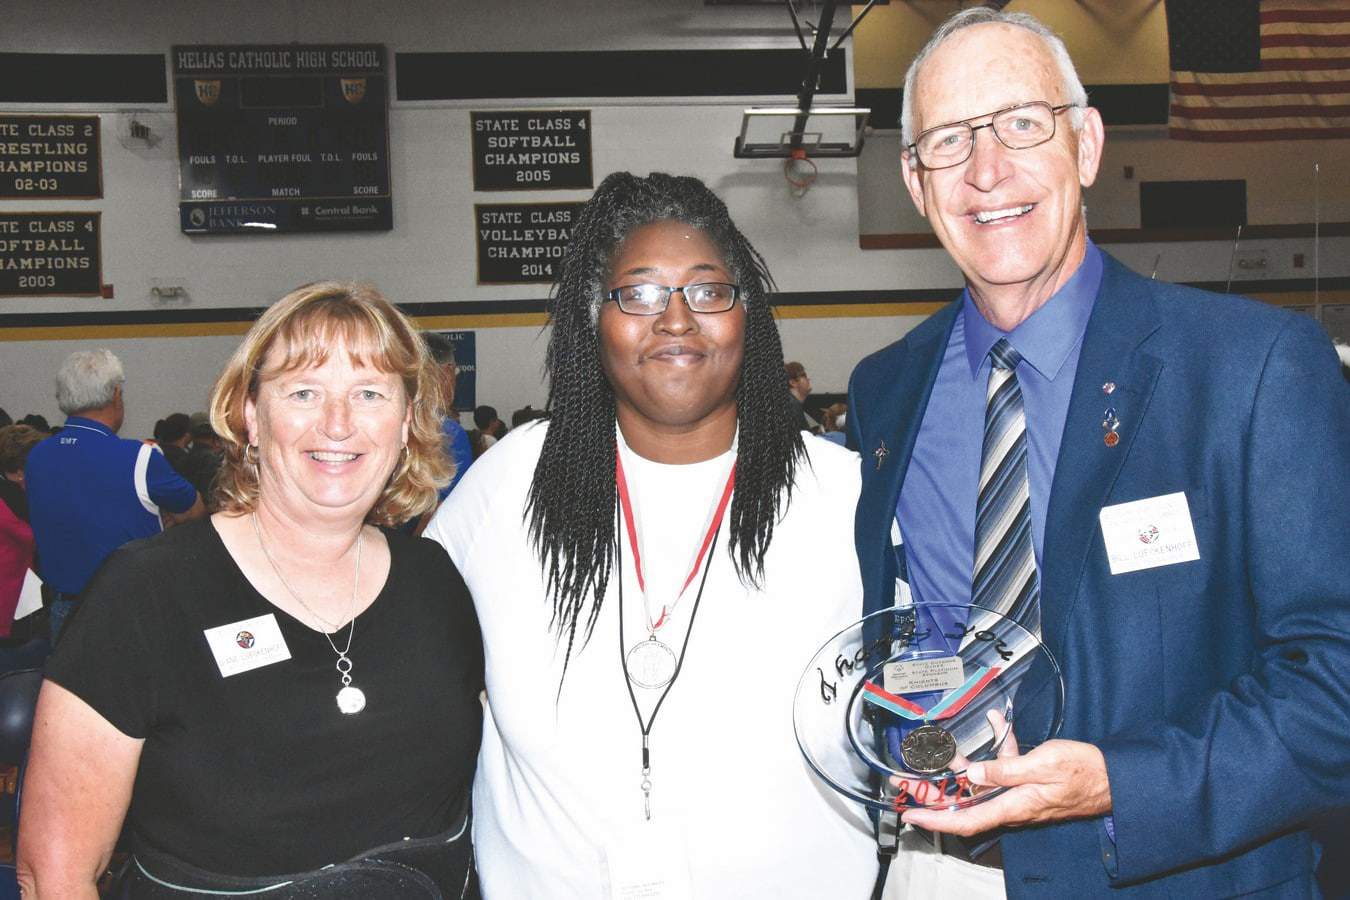 Athlete with medal around neck poses with volunteers holing a circular award